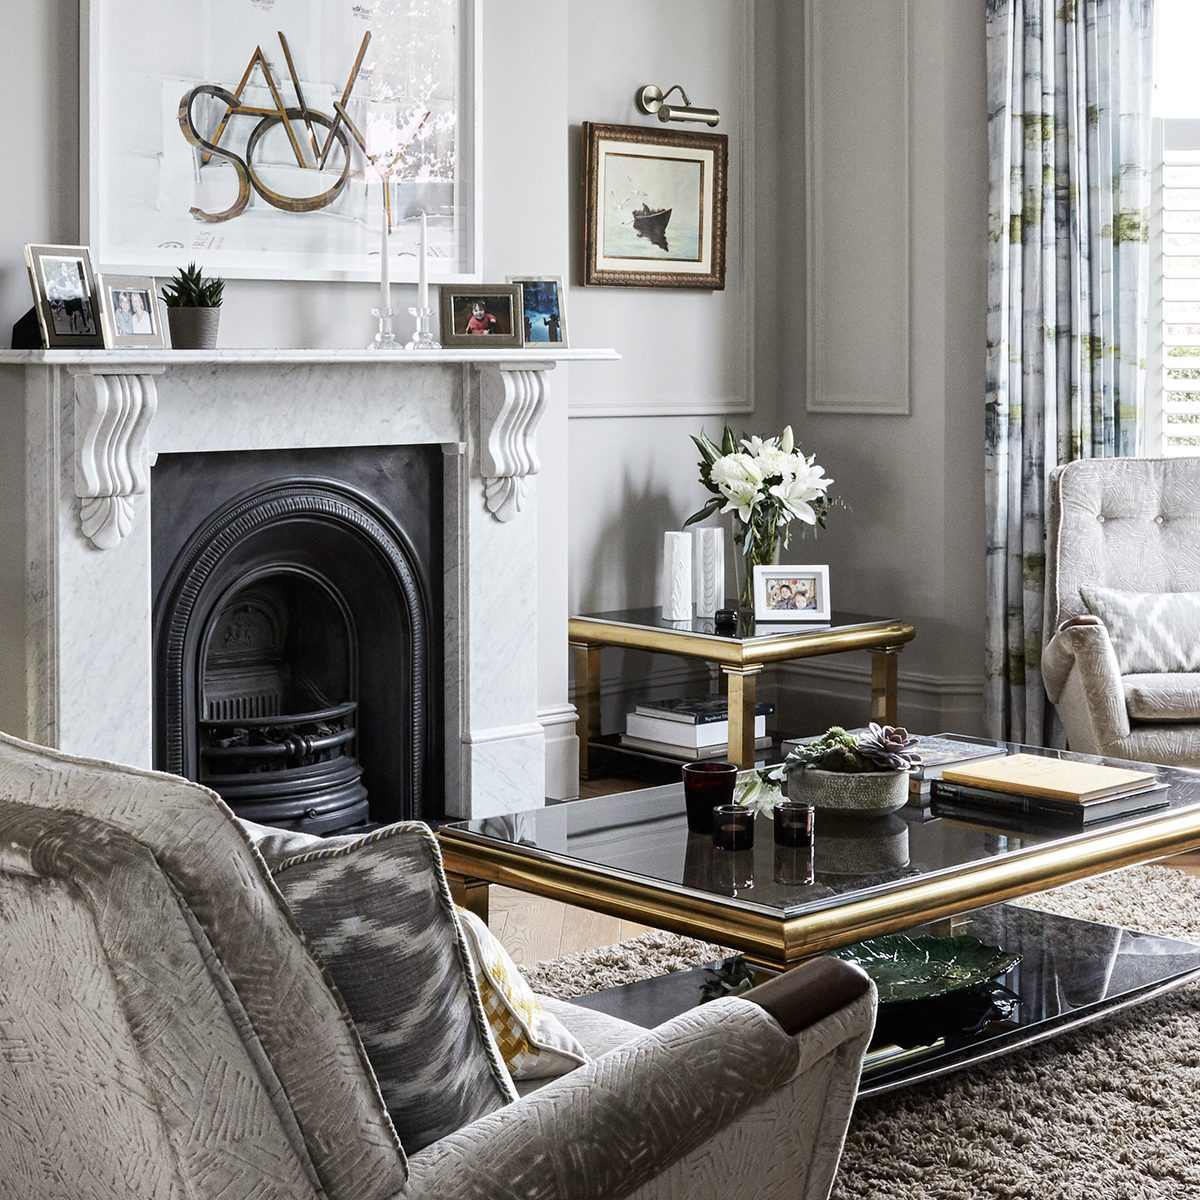 Grey Living Room Ideas Living Room Ideas In Shades Of Grey Homes Gardens Homes Gardensdocument Documenttype